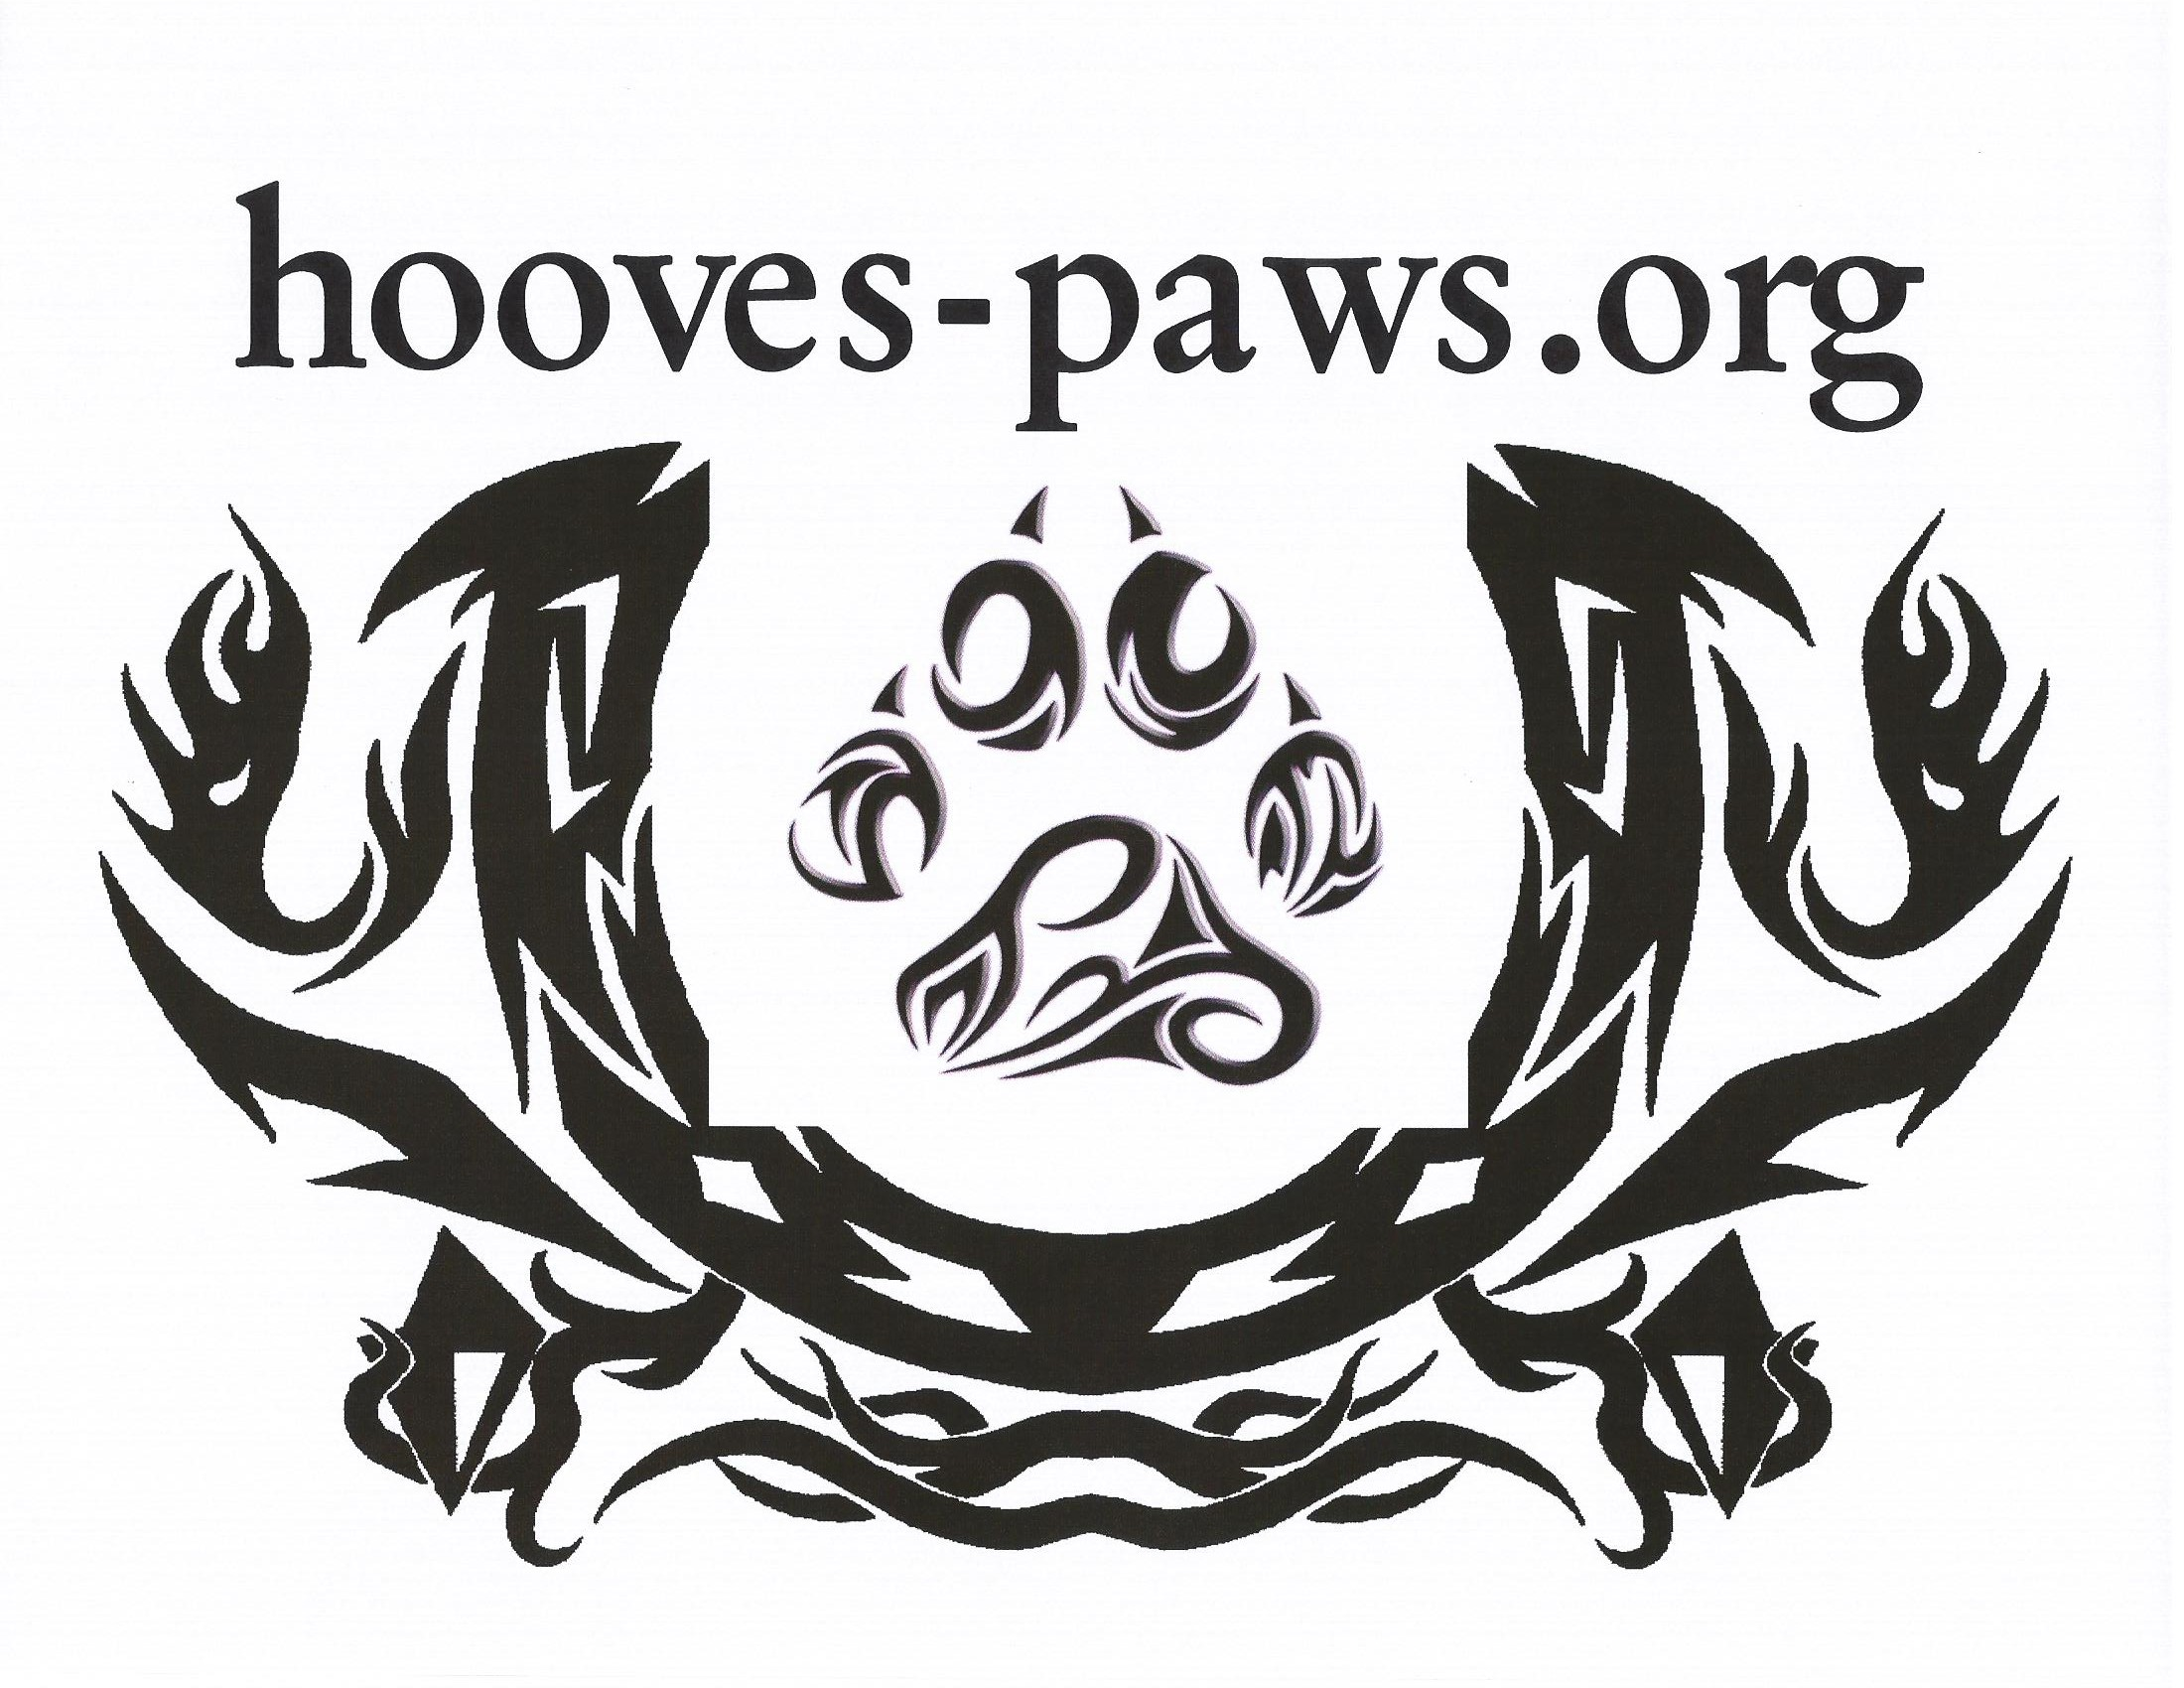 WHISKERS PAWS HOOVES AND CLAWS ANIMAL ADVOCACY | online donations | crowdfunding